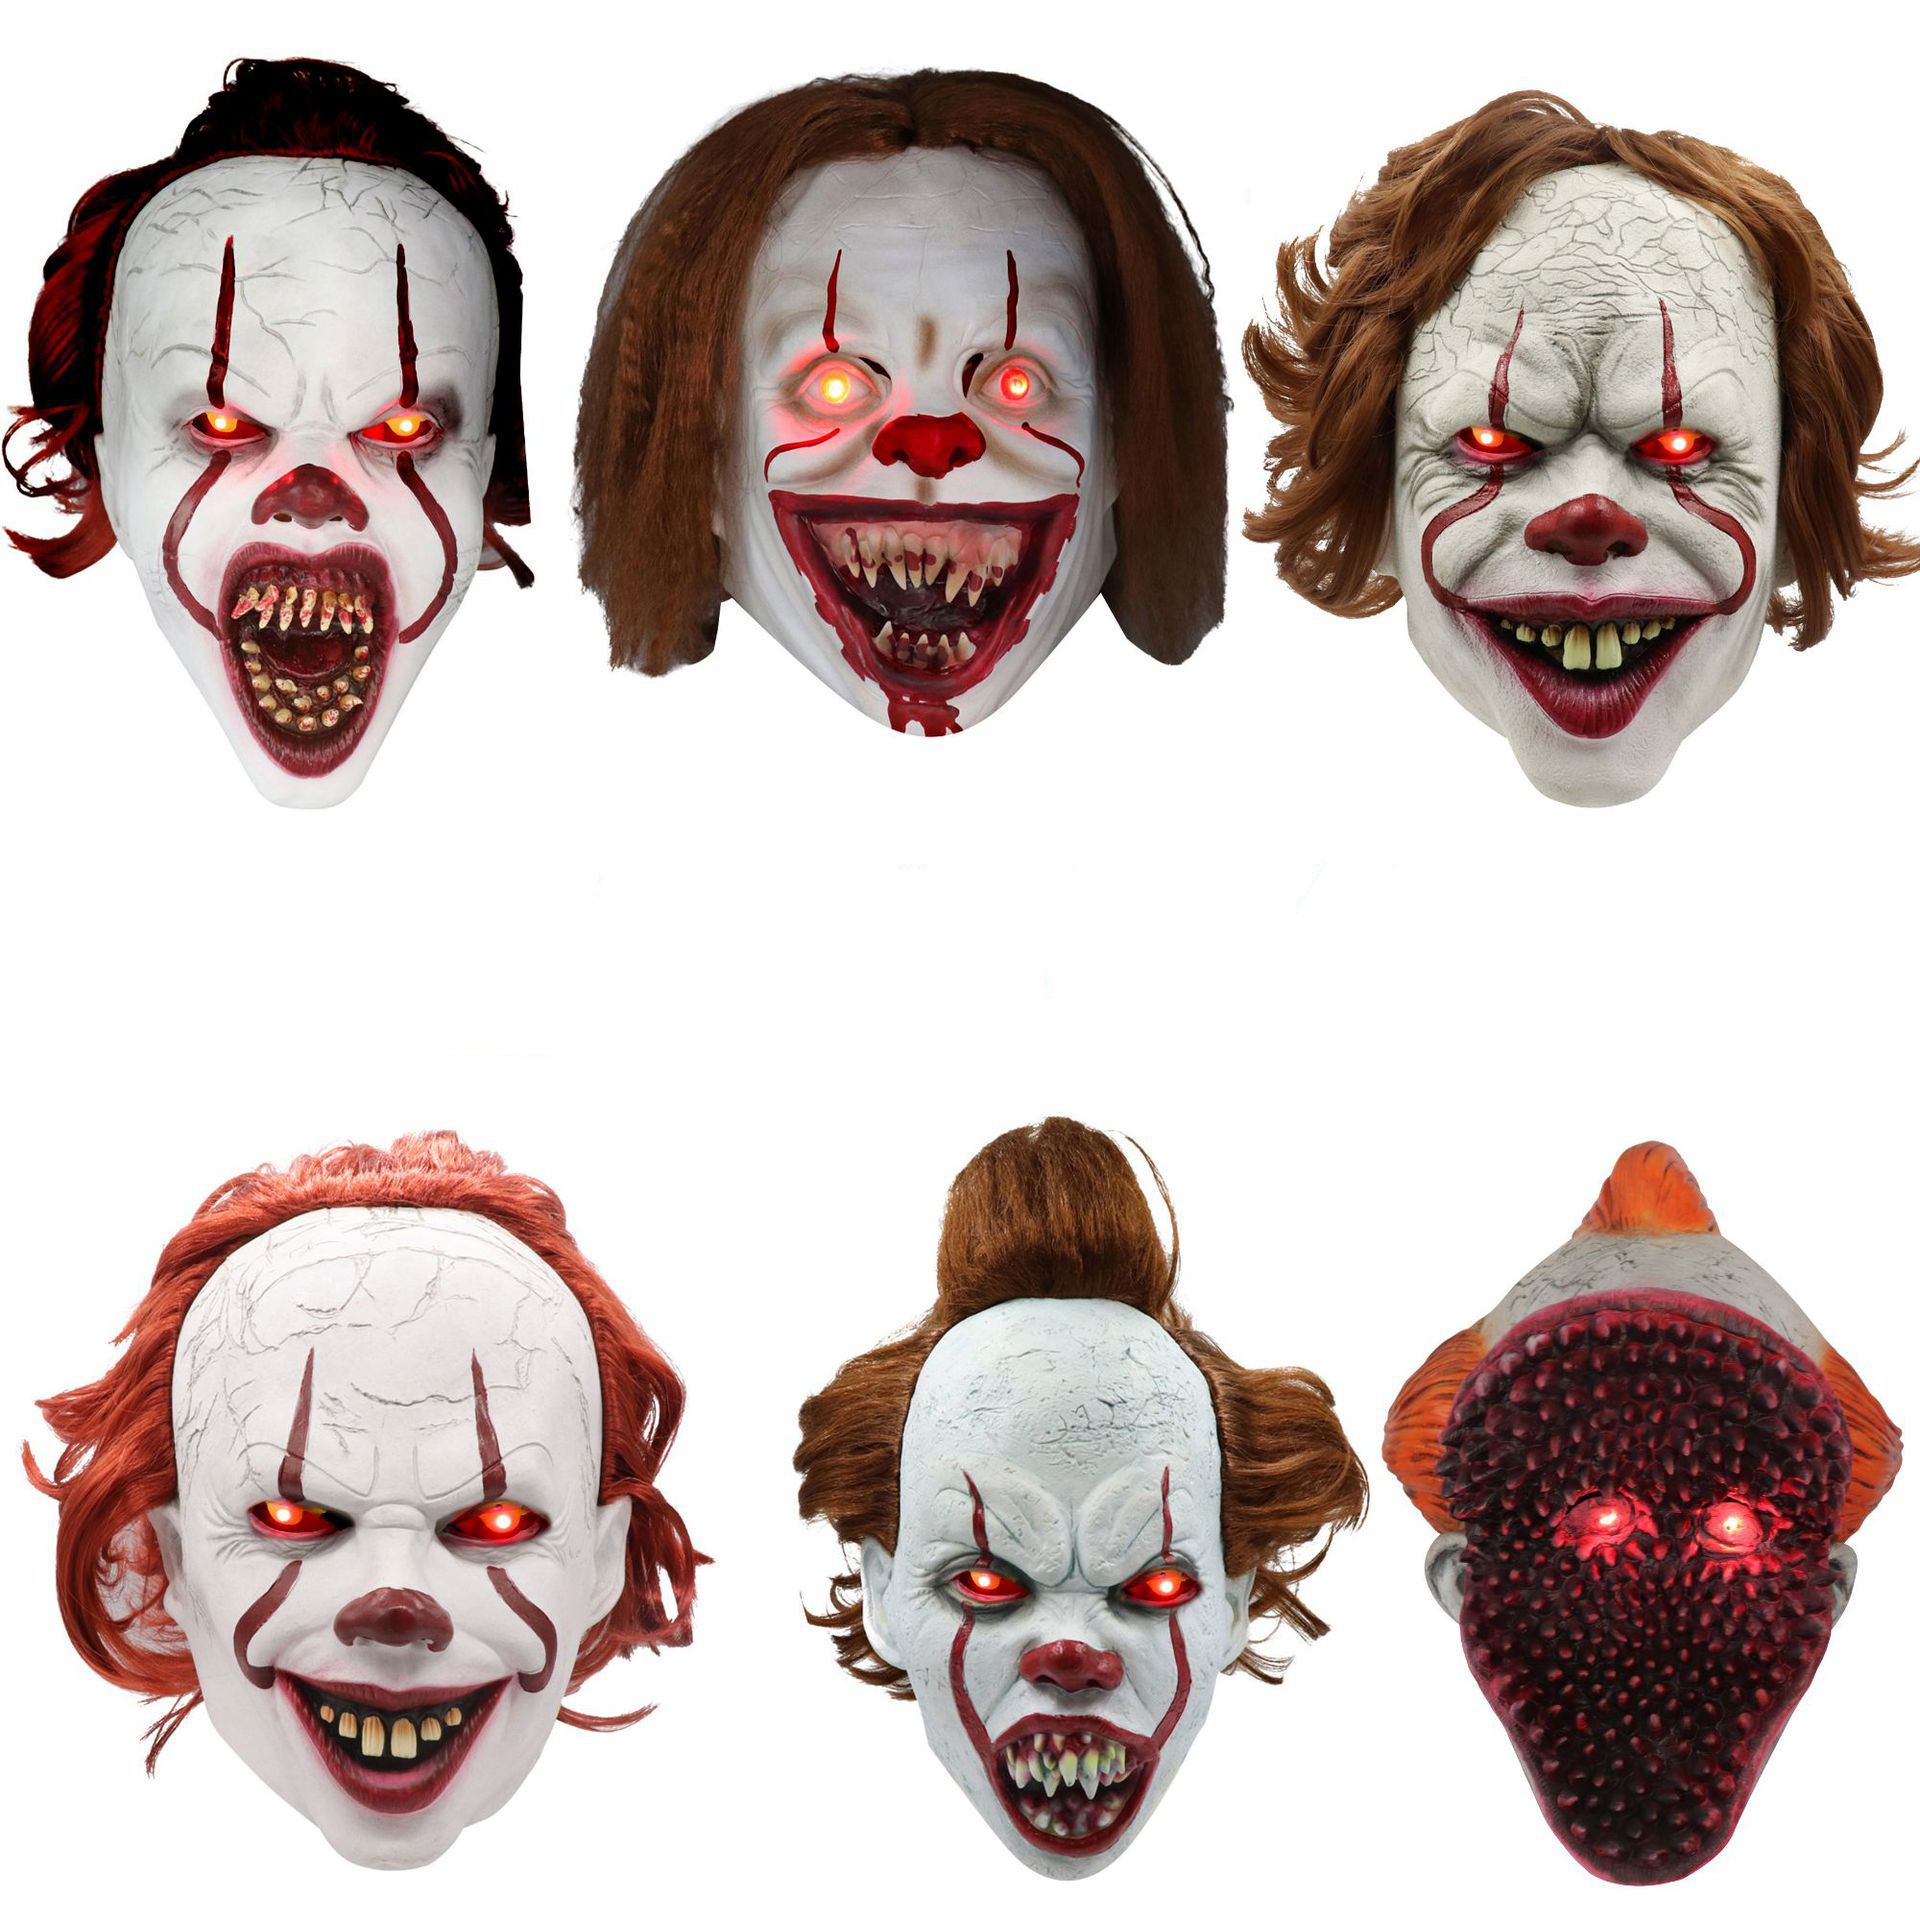 Joker Masker Led Pennywise Stephen King's Het Hoofdstuk Twee 2 Horror Latex Cosplay Clown Halloween Party Prop Masker QMLM-2058